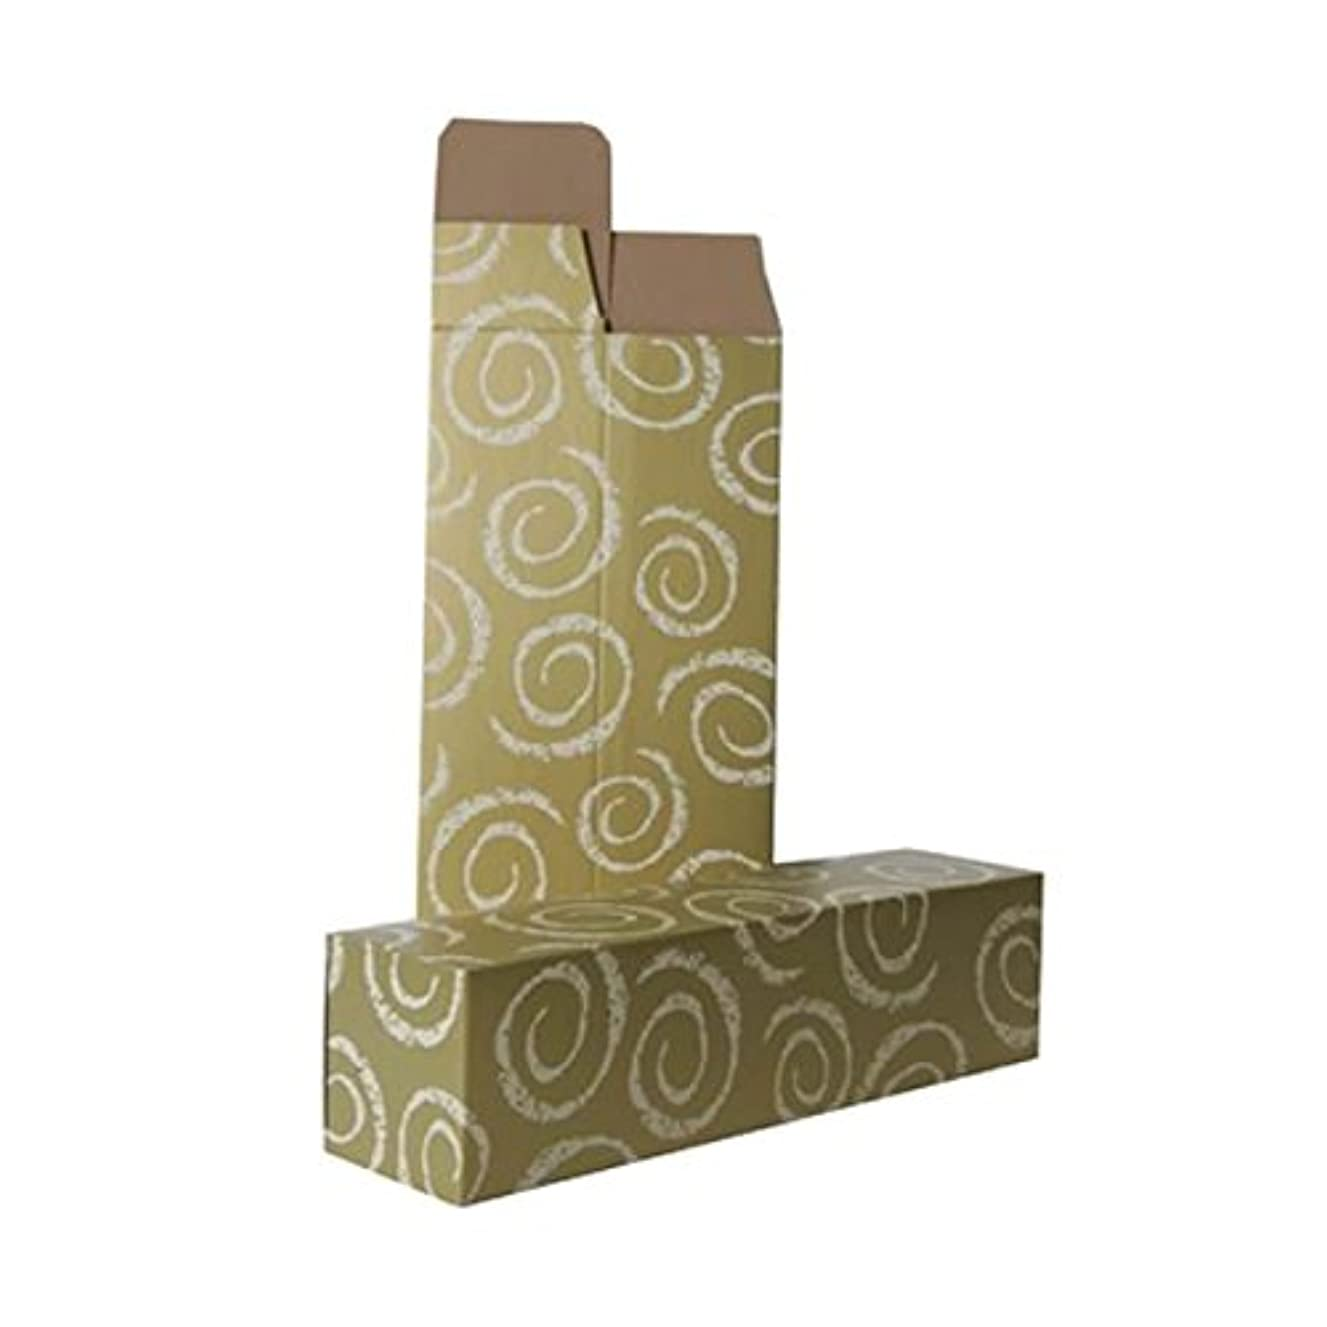 JAM PAPER Wine Boxes - 3 1/4 x 3 1/4 x 13 1/4 - Gold with White Swirls - 6/Pack